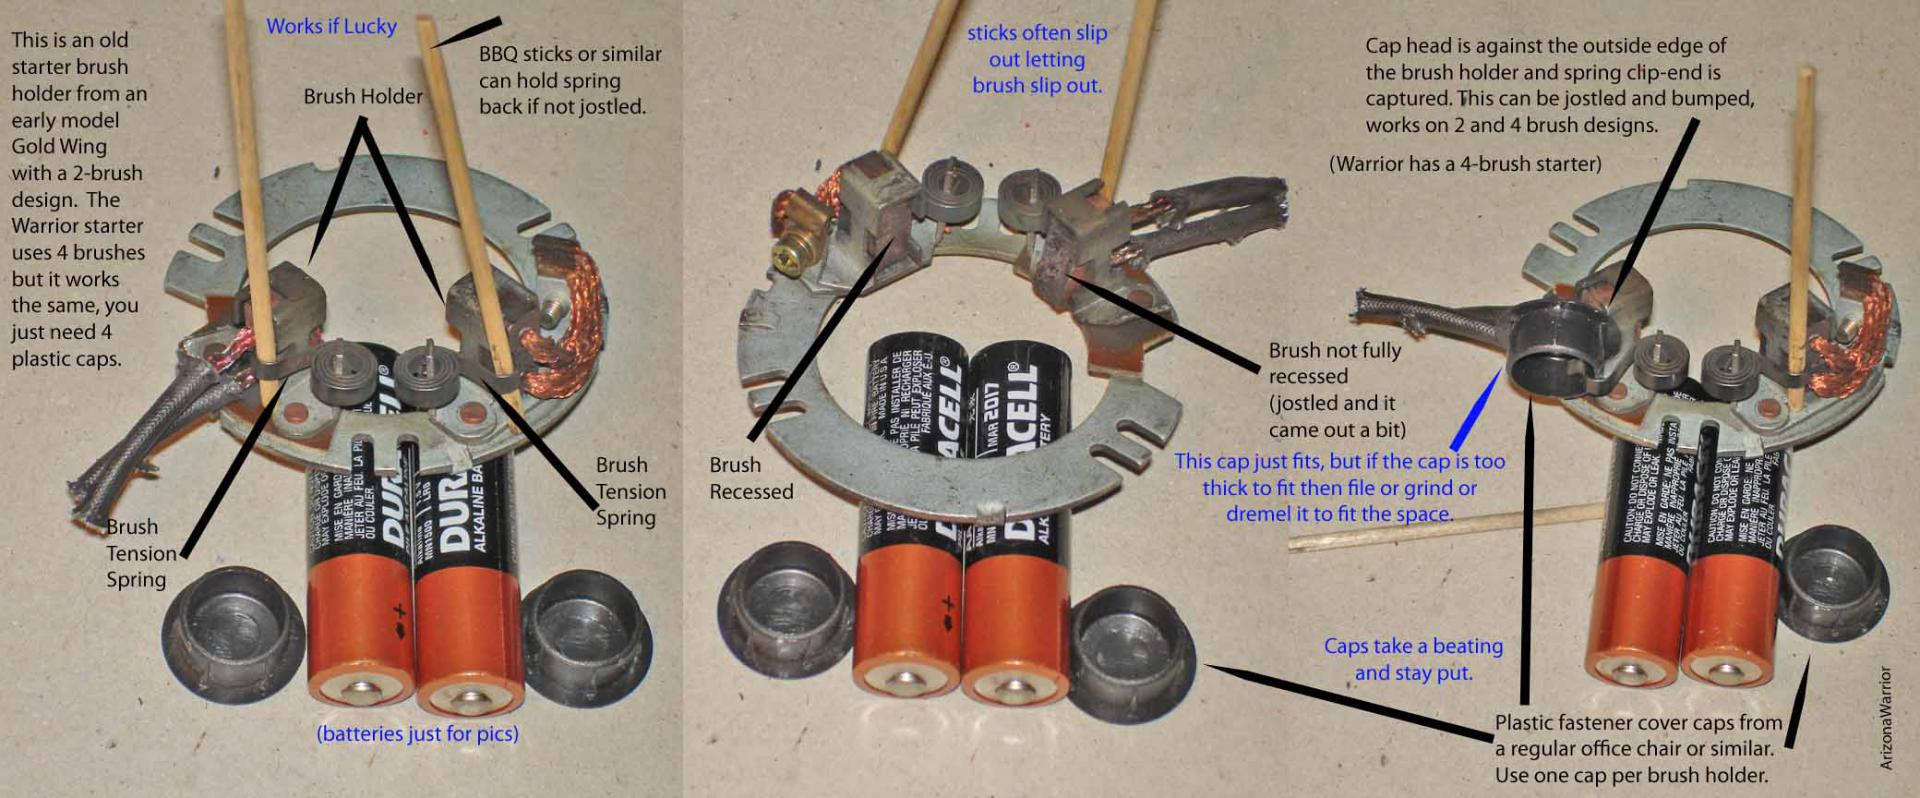 Click image for larger version  Name:Starter Brush Reassembly Tip.jpg Views:208 Size:222.9 KB ID:82218